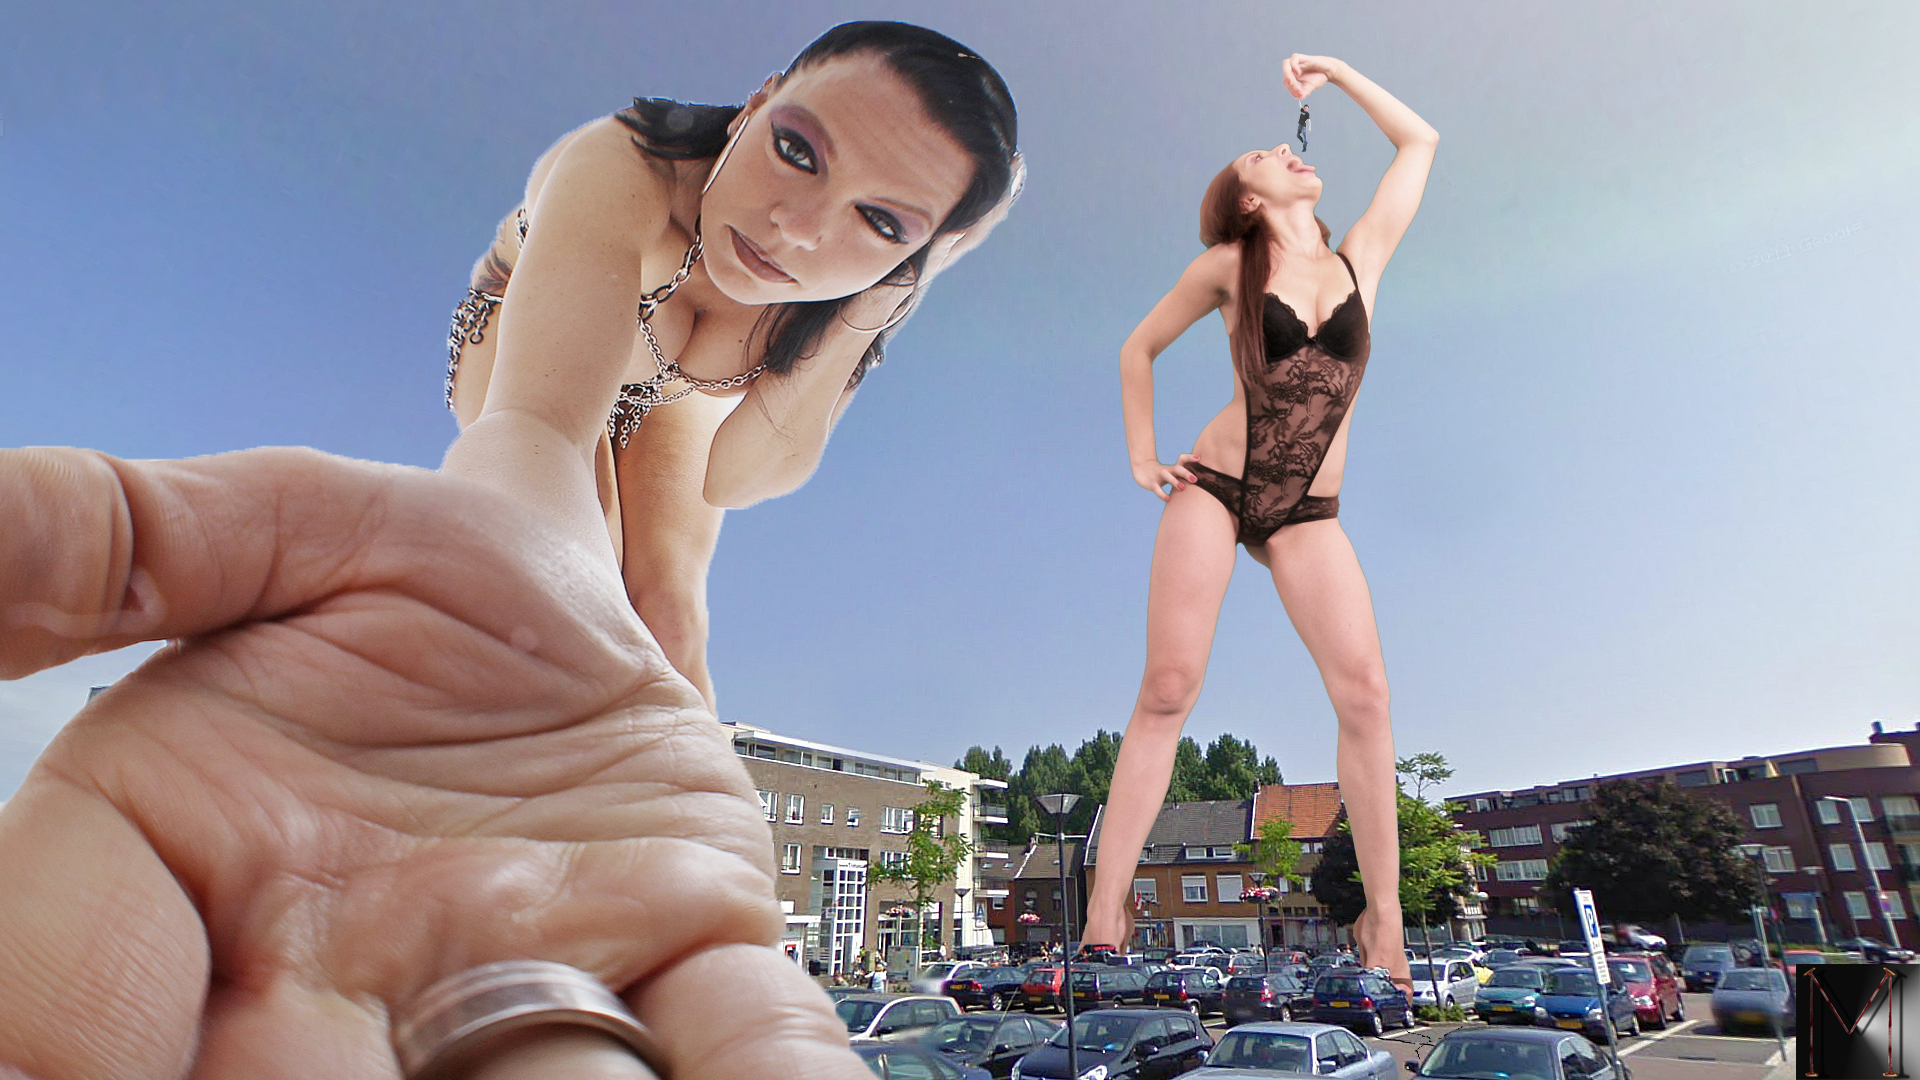 160528 - between_fingers buildings cleavage collage dangle giantess hand looking_at_victim marcrtr open_mouth parking_lot point_of_view vore